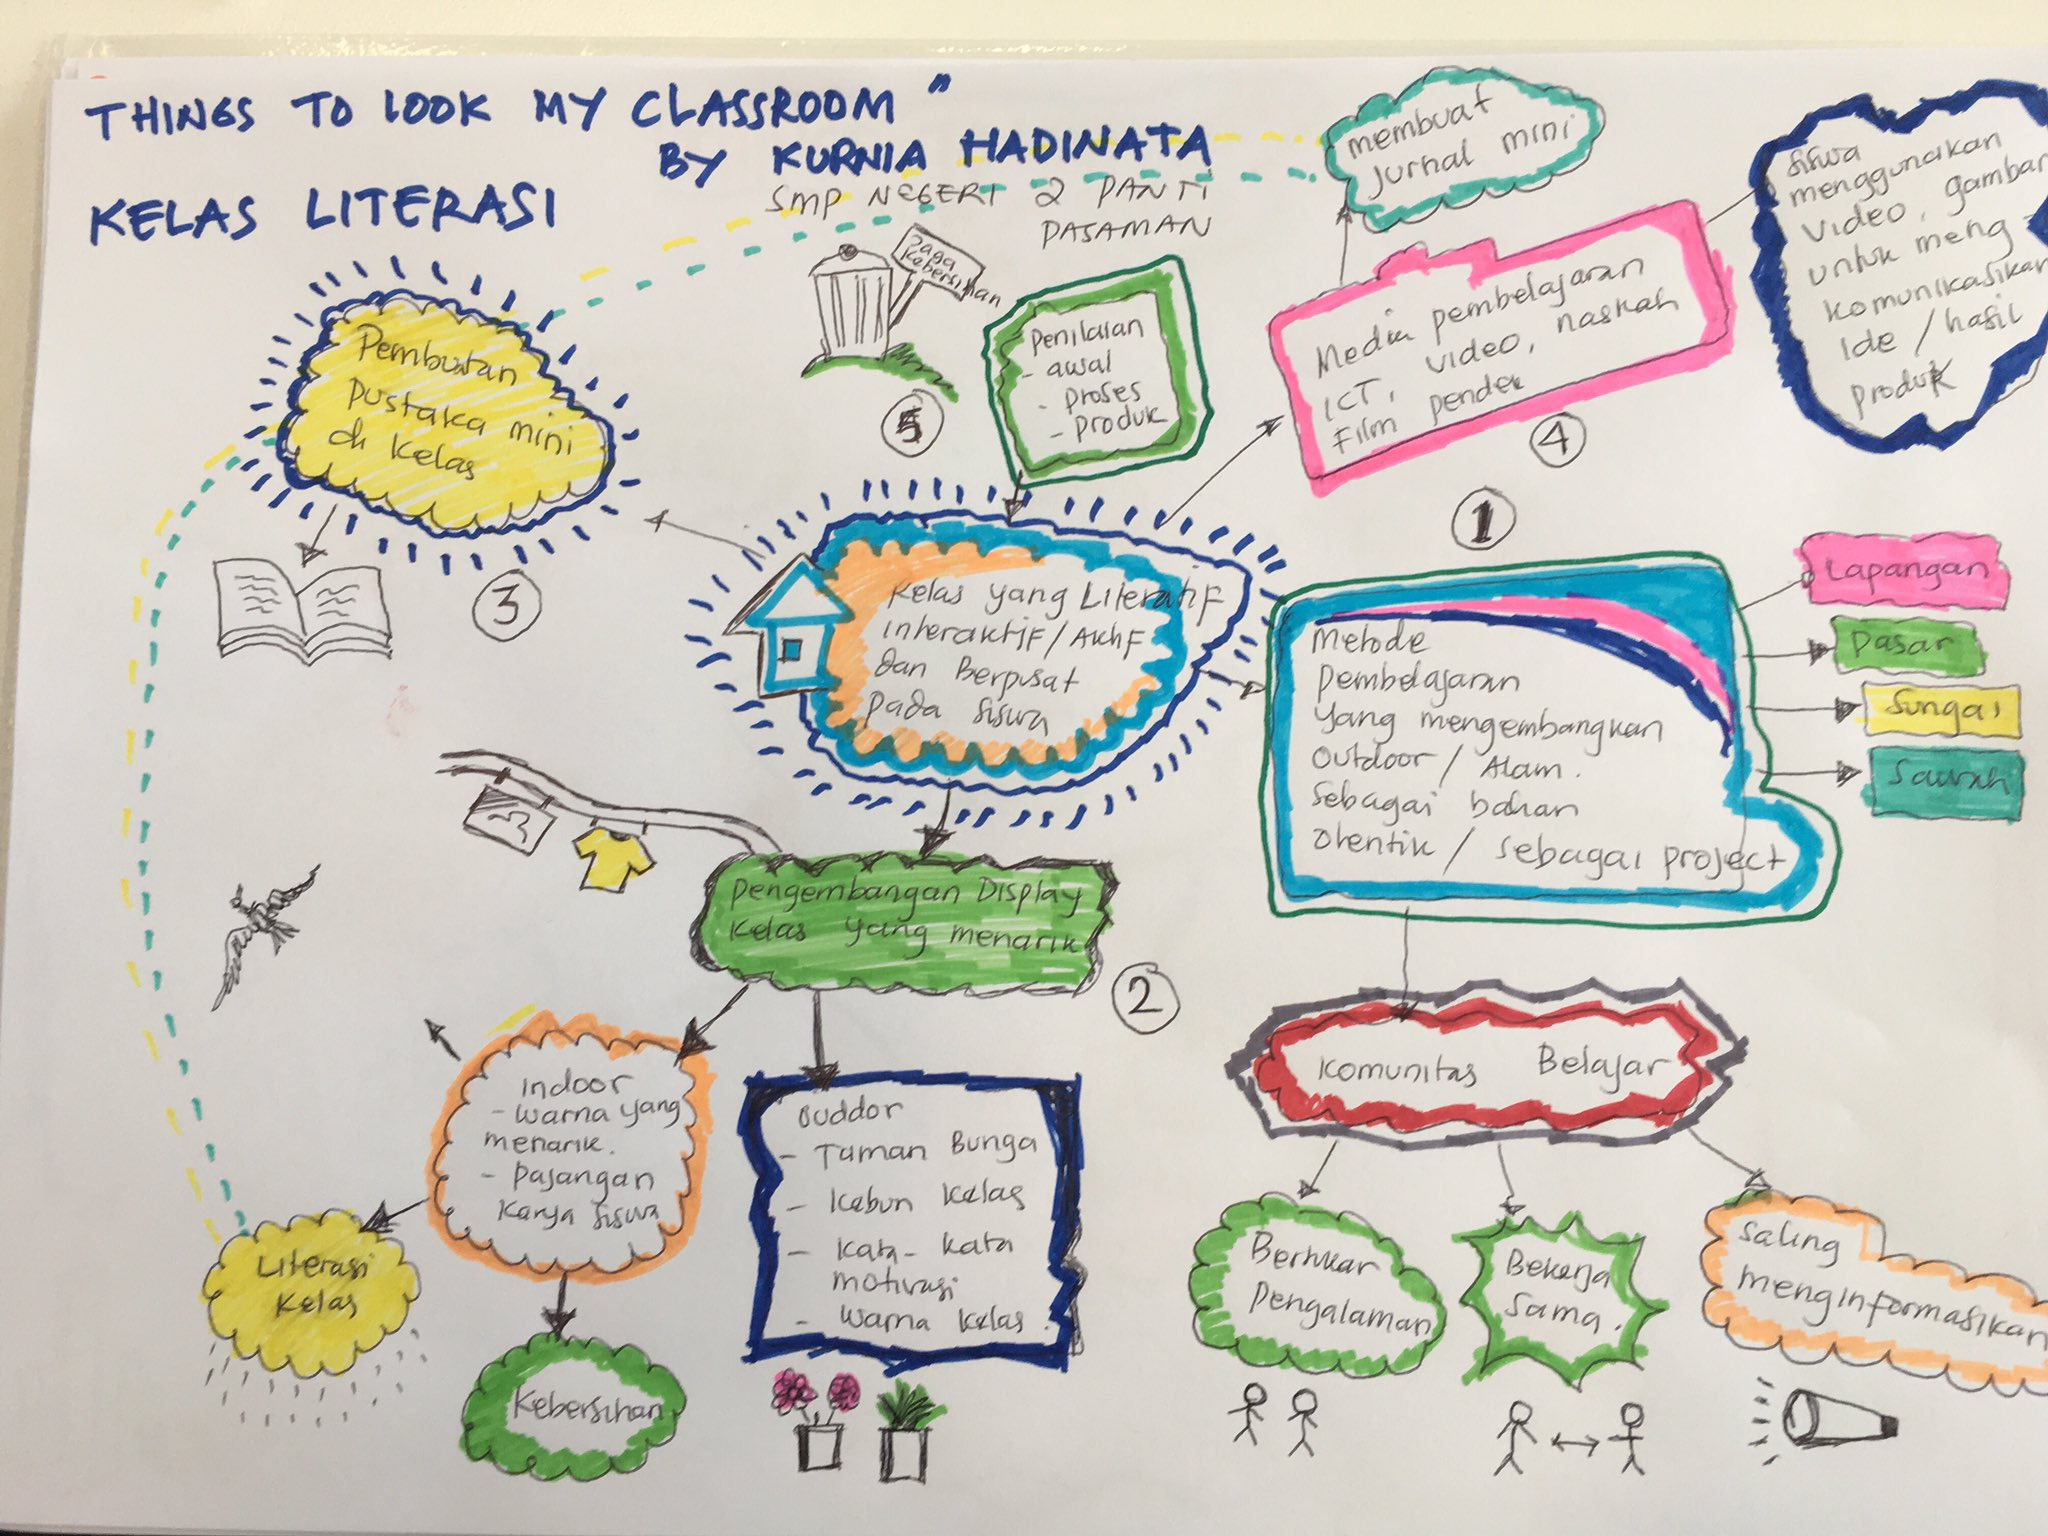 AEF  @LisaHayman1 encouraged creation of #sketchnotes of learning from #AustraliaAwards teacher professional development program #OzAlum https://t.co/vV24rXg2mB